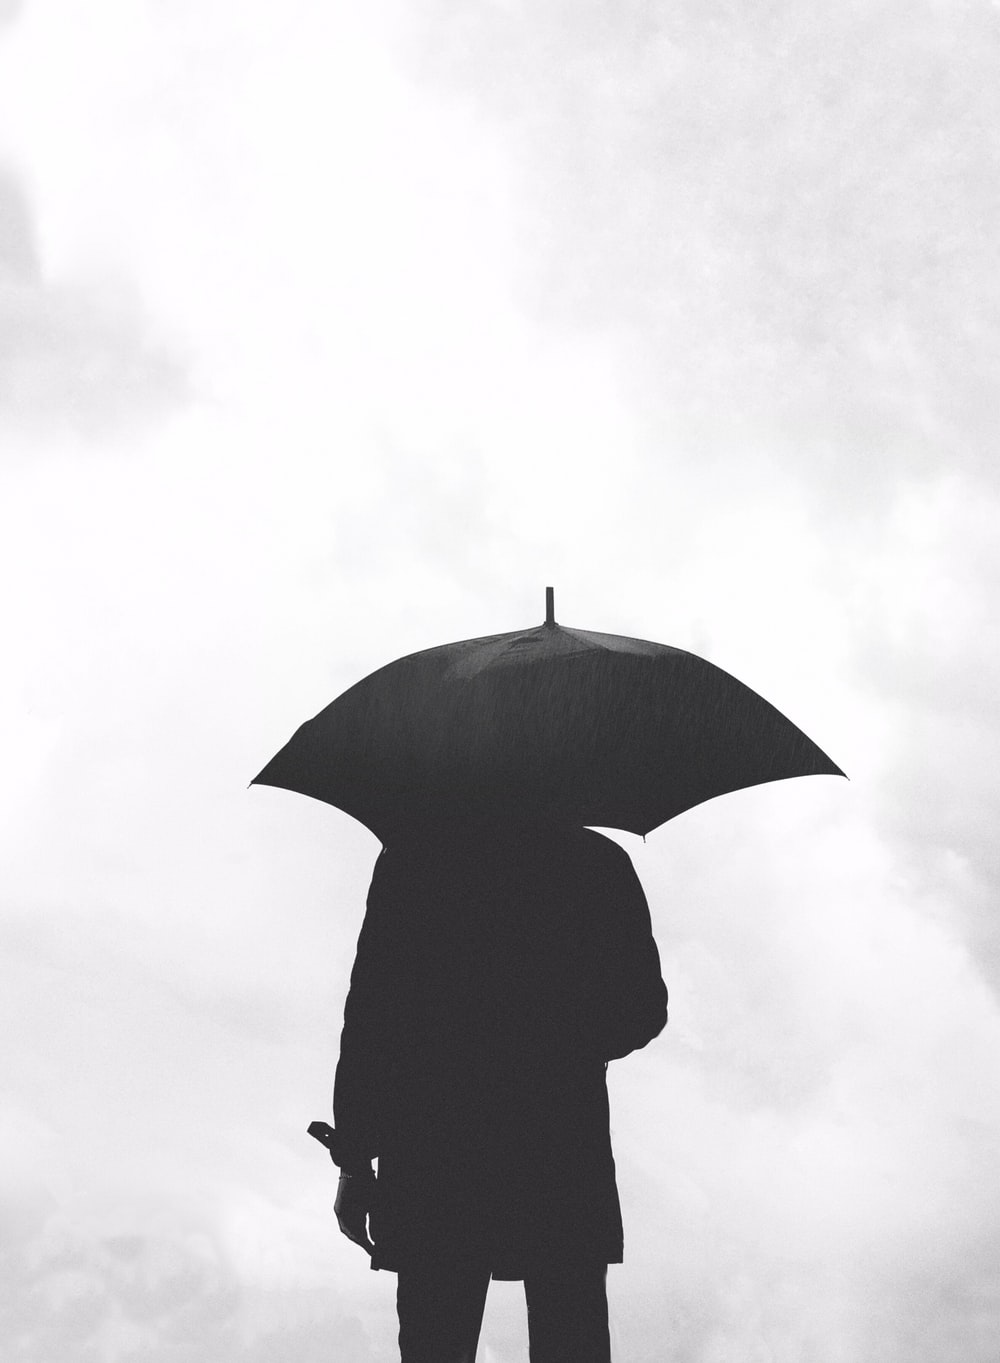 silhouette of person under umbrella under cloudy sky